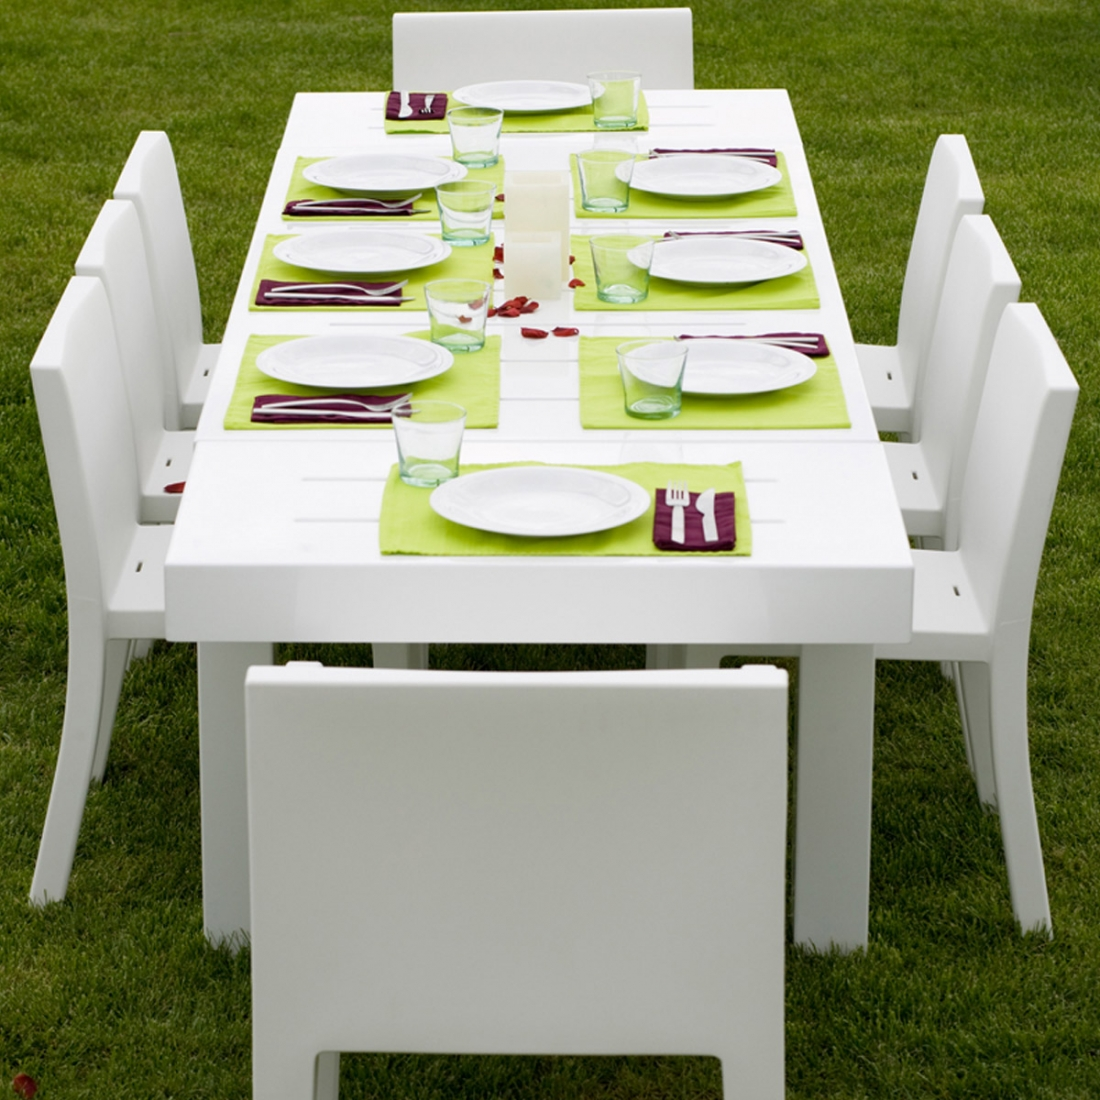 Table de jardin design 12 personnes jut par vondom for Table exterieur de couleur